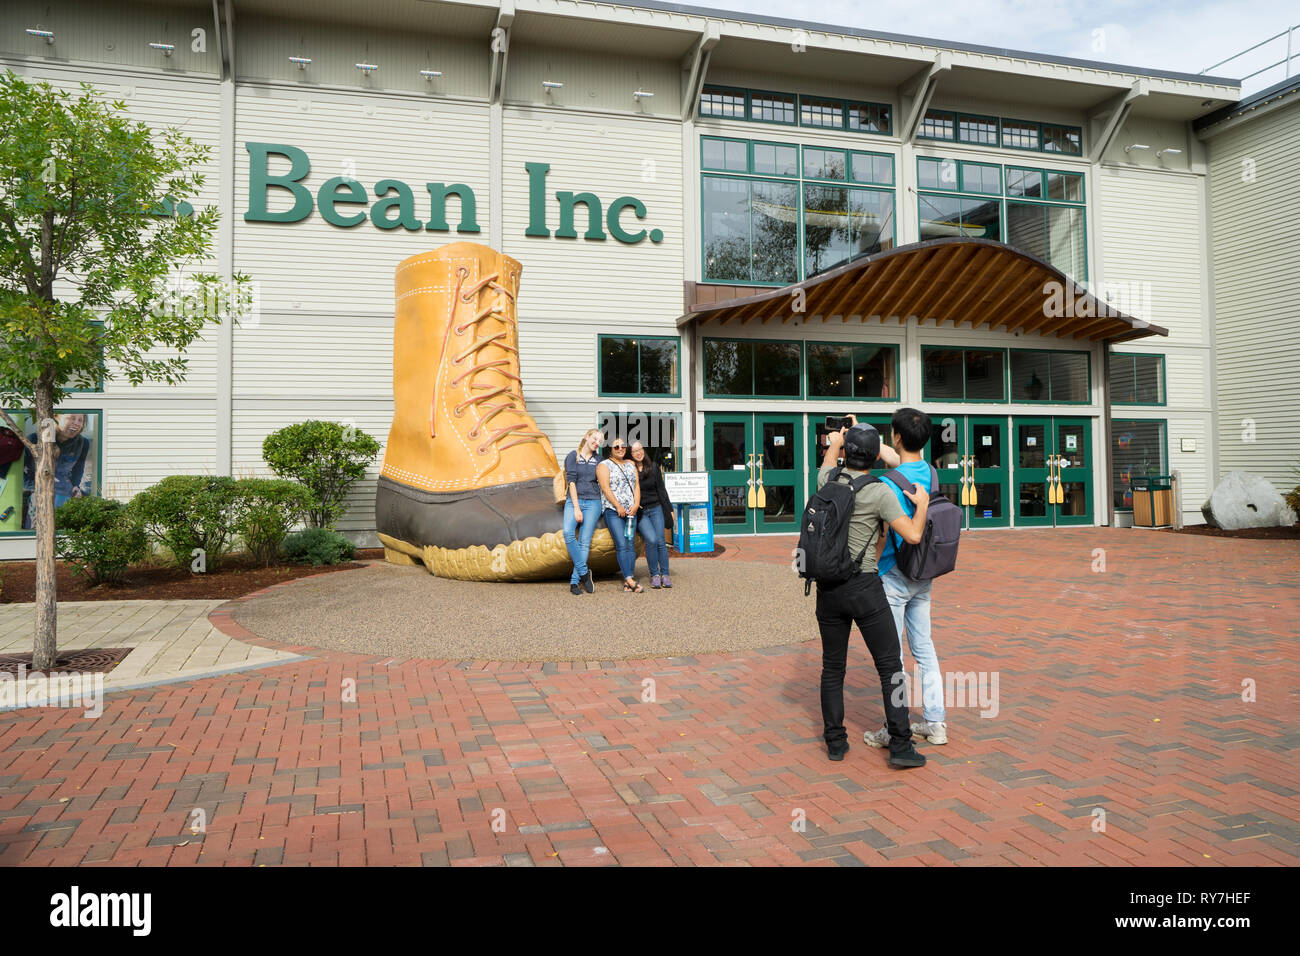 Visitors taking a souvenir picture with the 90th anniversary bean boot in front of LL Bean store in Freeport, Maine, USA. - Stock Image